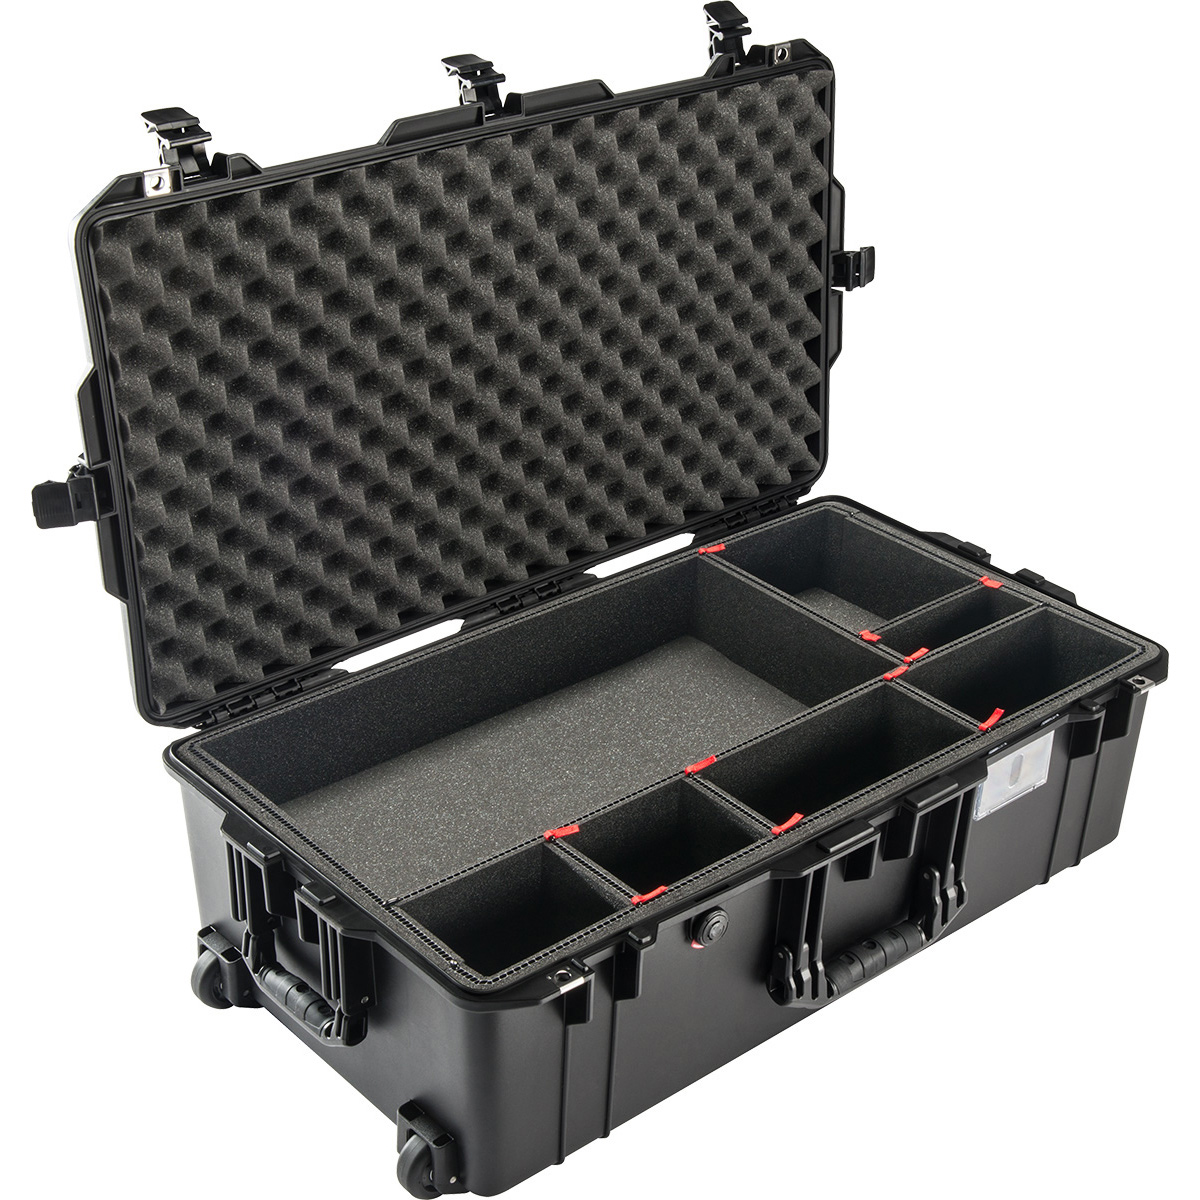 Peli Air 1615 TrekPak